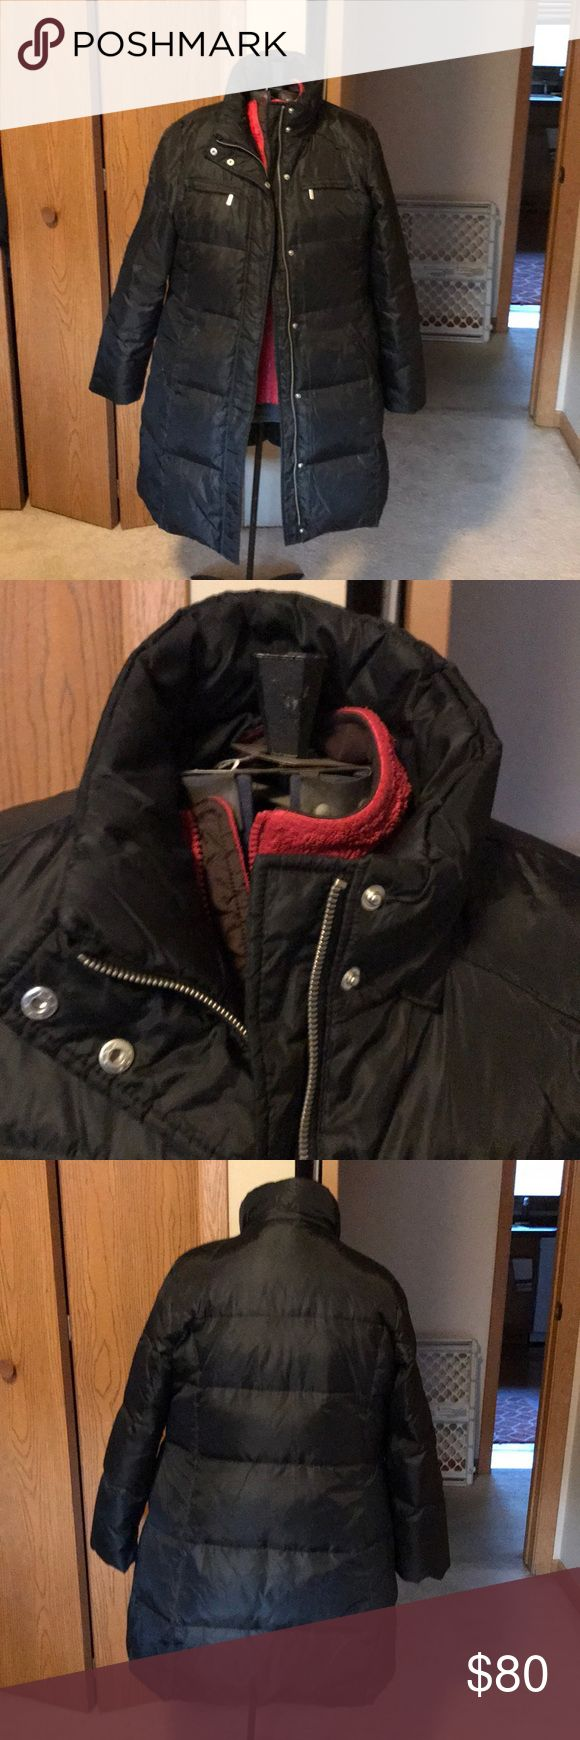 "Michael Kors black puffer coat size xl Very very gently worn Michael Kors full length zippered puffer coat size XL. Has snapped collar, 2small zippered pockets and 2 deep pockets.bottom side zippers. Measures 33"" from shoulder to hem. KORS Michael Kors Jackets & Coats Puffers"